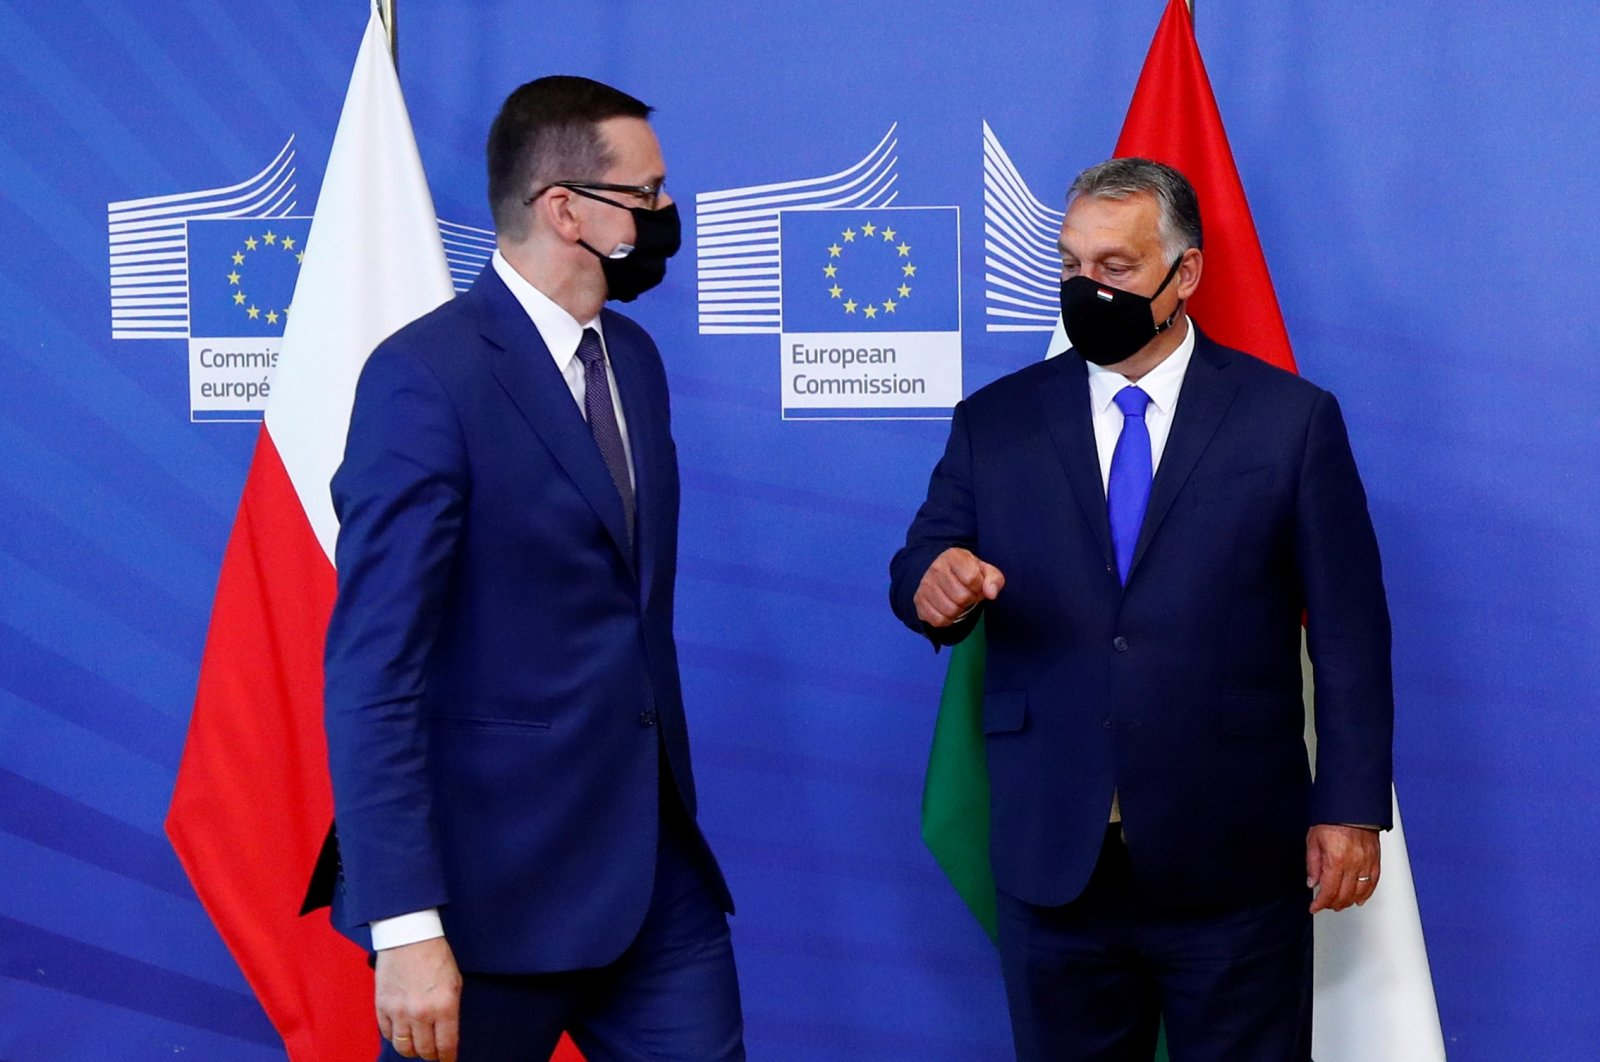 Poland's Prime Minister Mateusz Morawiecki and Hungary's Prime Minister Viktor Orban arrive ahead of a meeting with European Commission President Ursula von der Leyen in Brussels, Belgium, Sept. 24, 2020. (Reuters Photo)